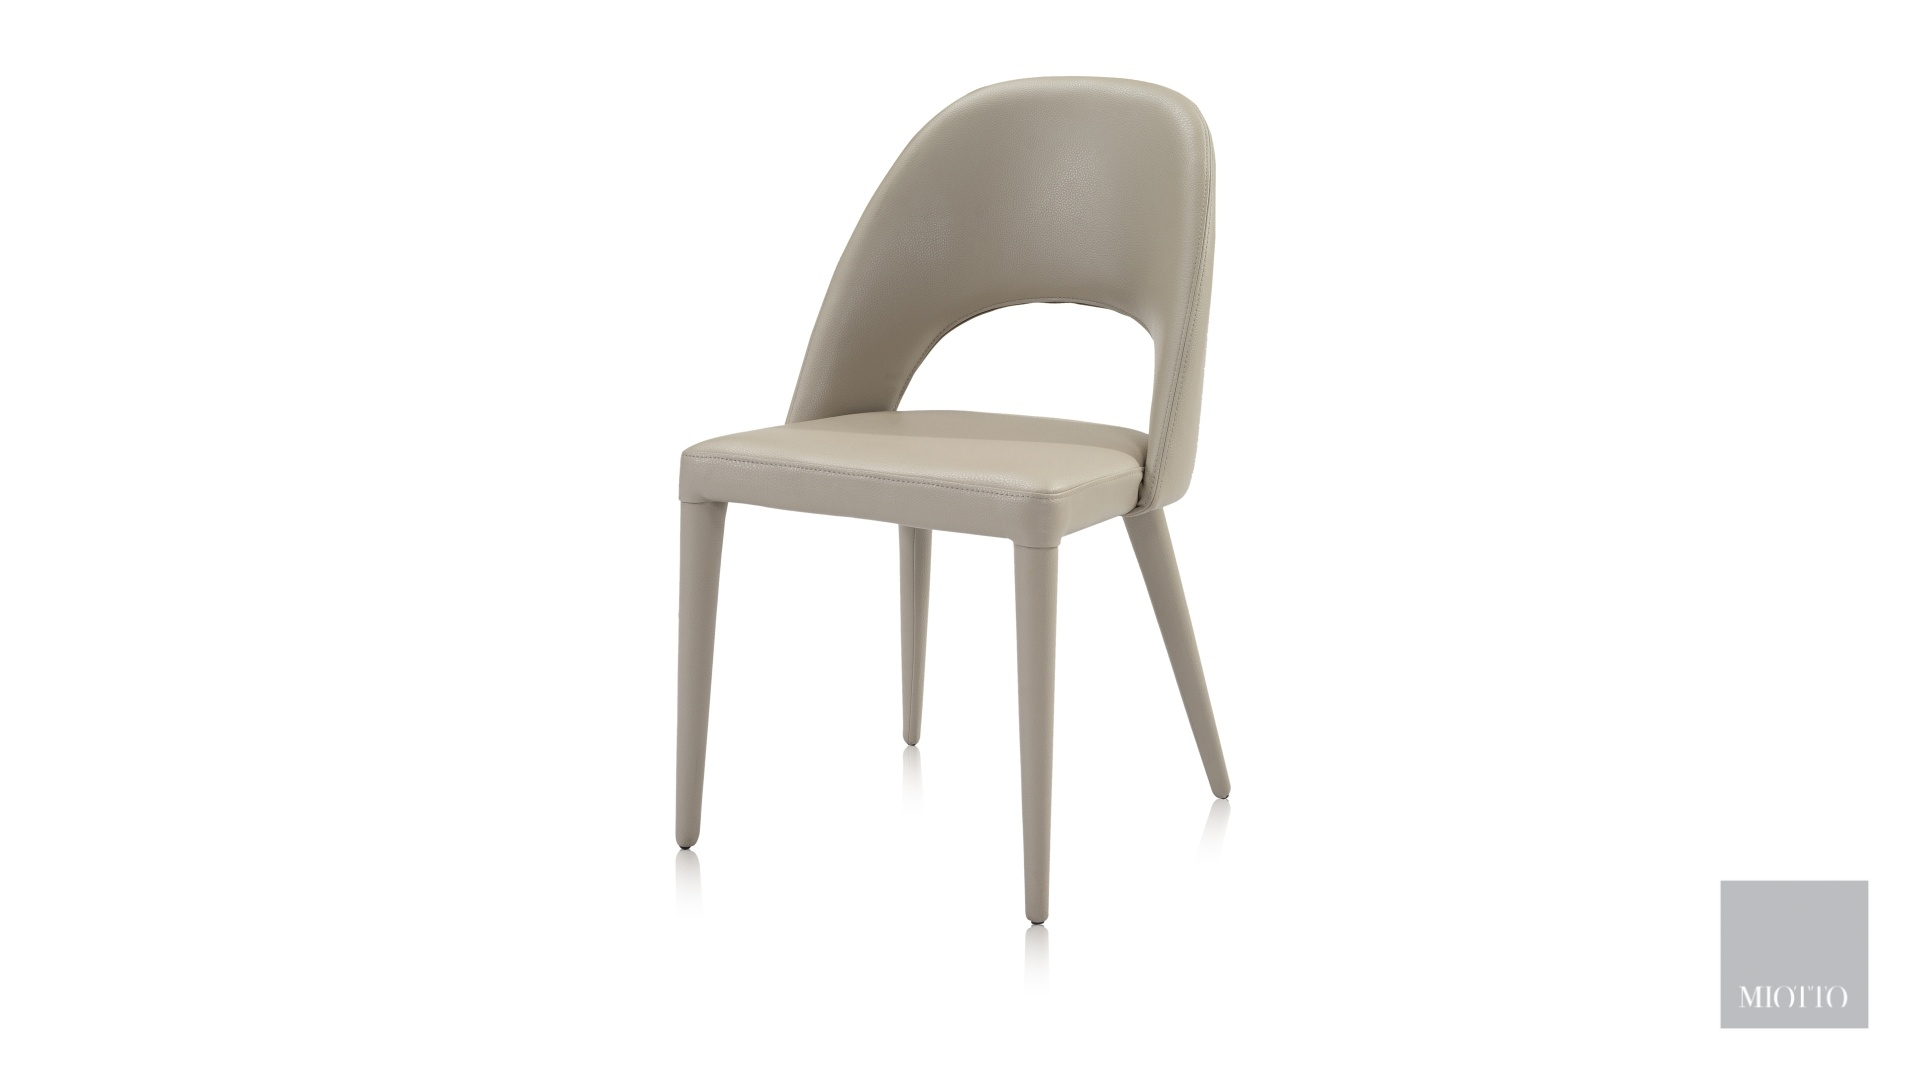 miotto_Salgari dining chair light grey miotto furniture